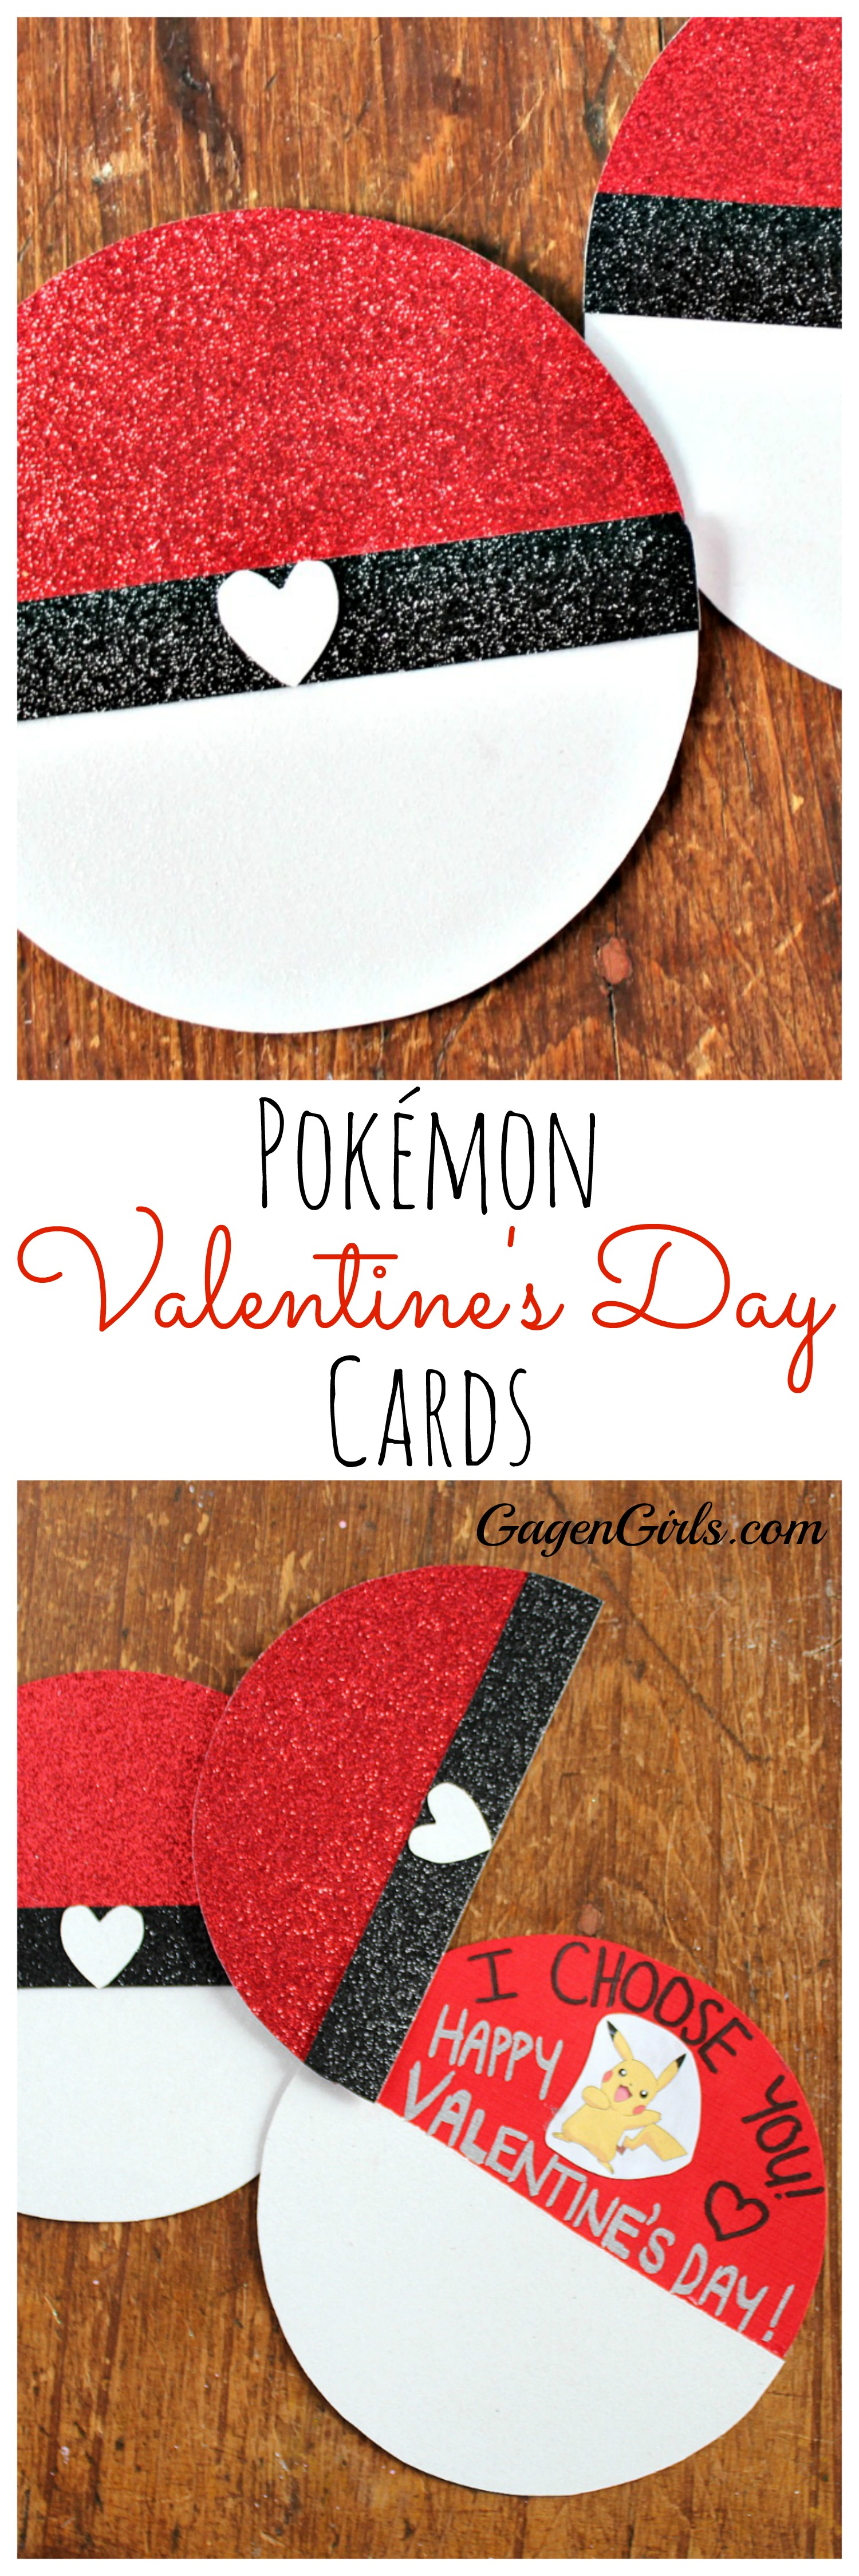 These Adorable Pokémon Valentineu0027s Day Cards Are A Snap To Make! Only 15  Minutes (